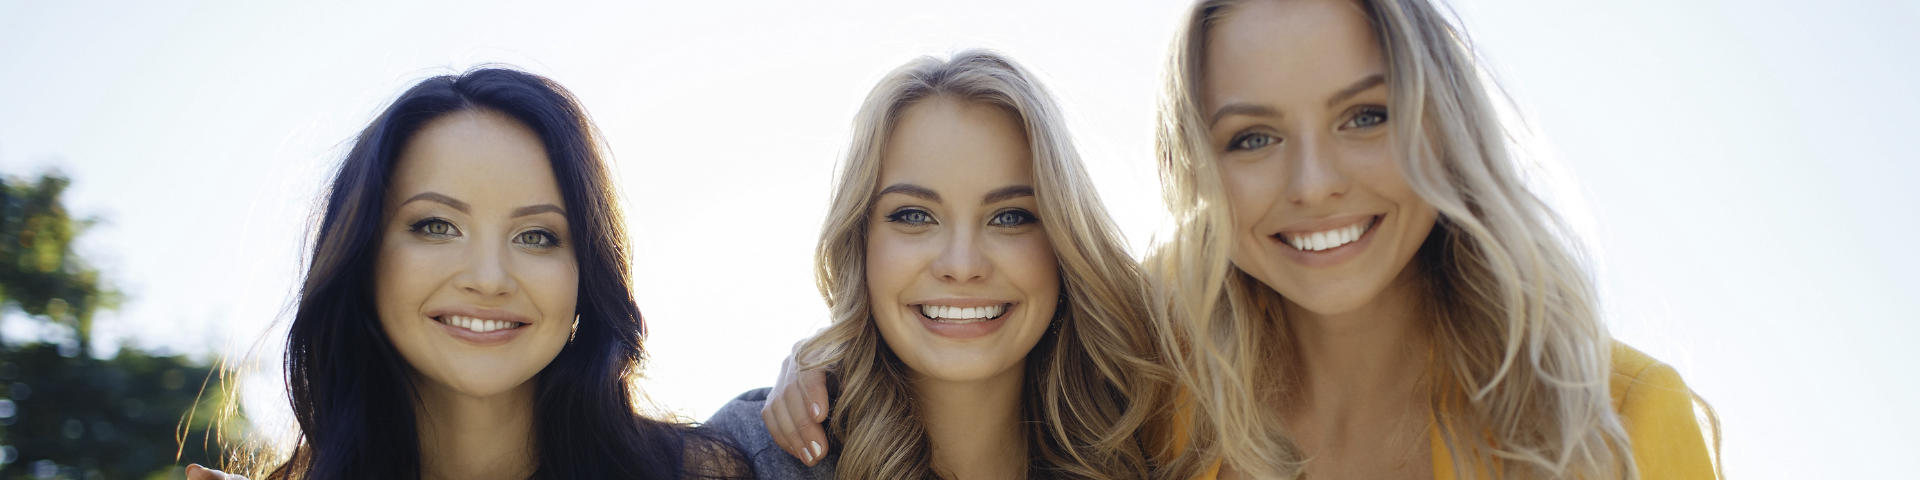 Three young woman with perfect smiles.